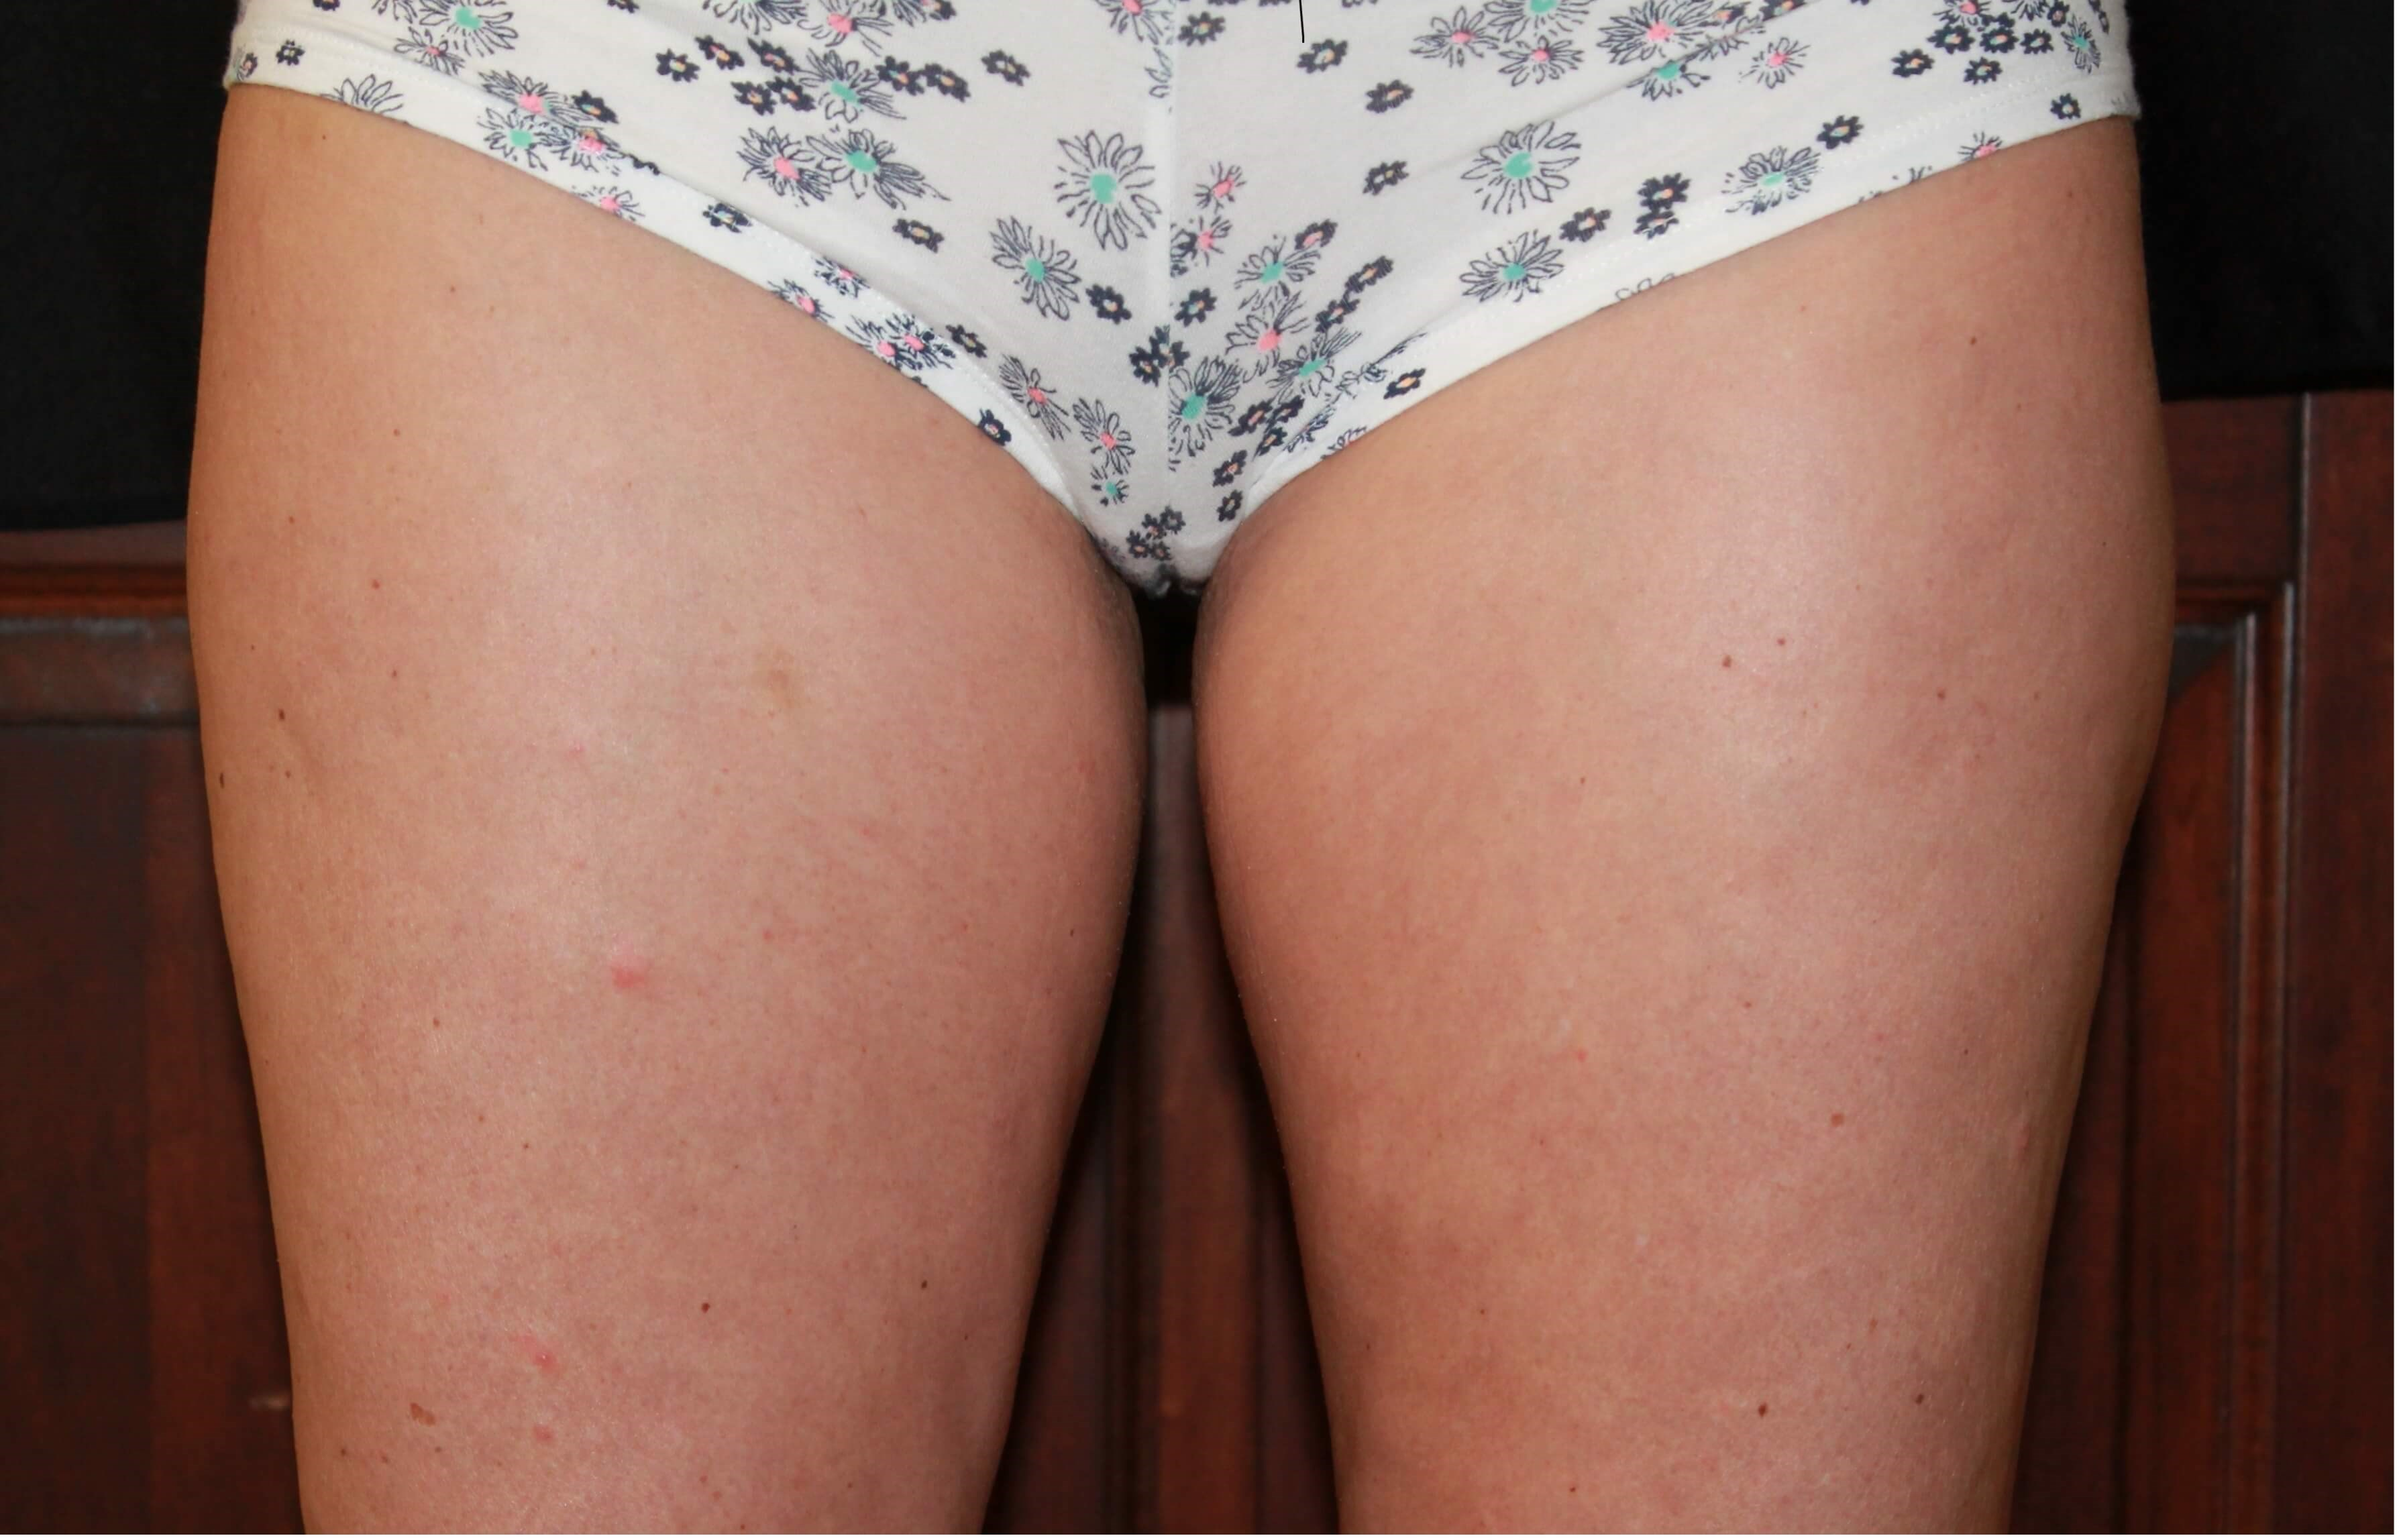 inner thighs 60 days post treatment